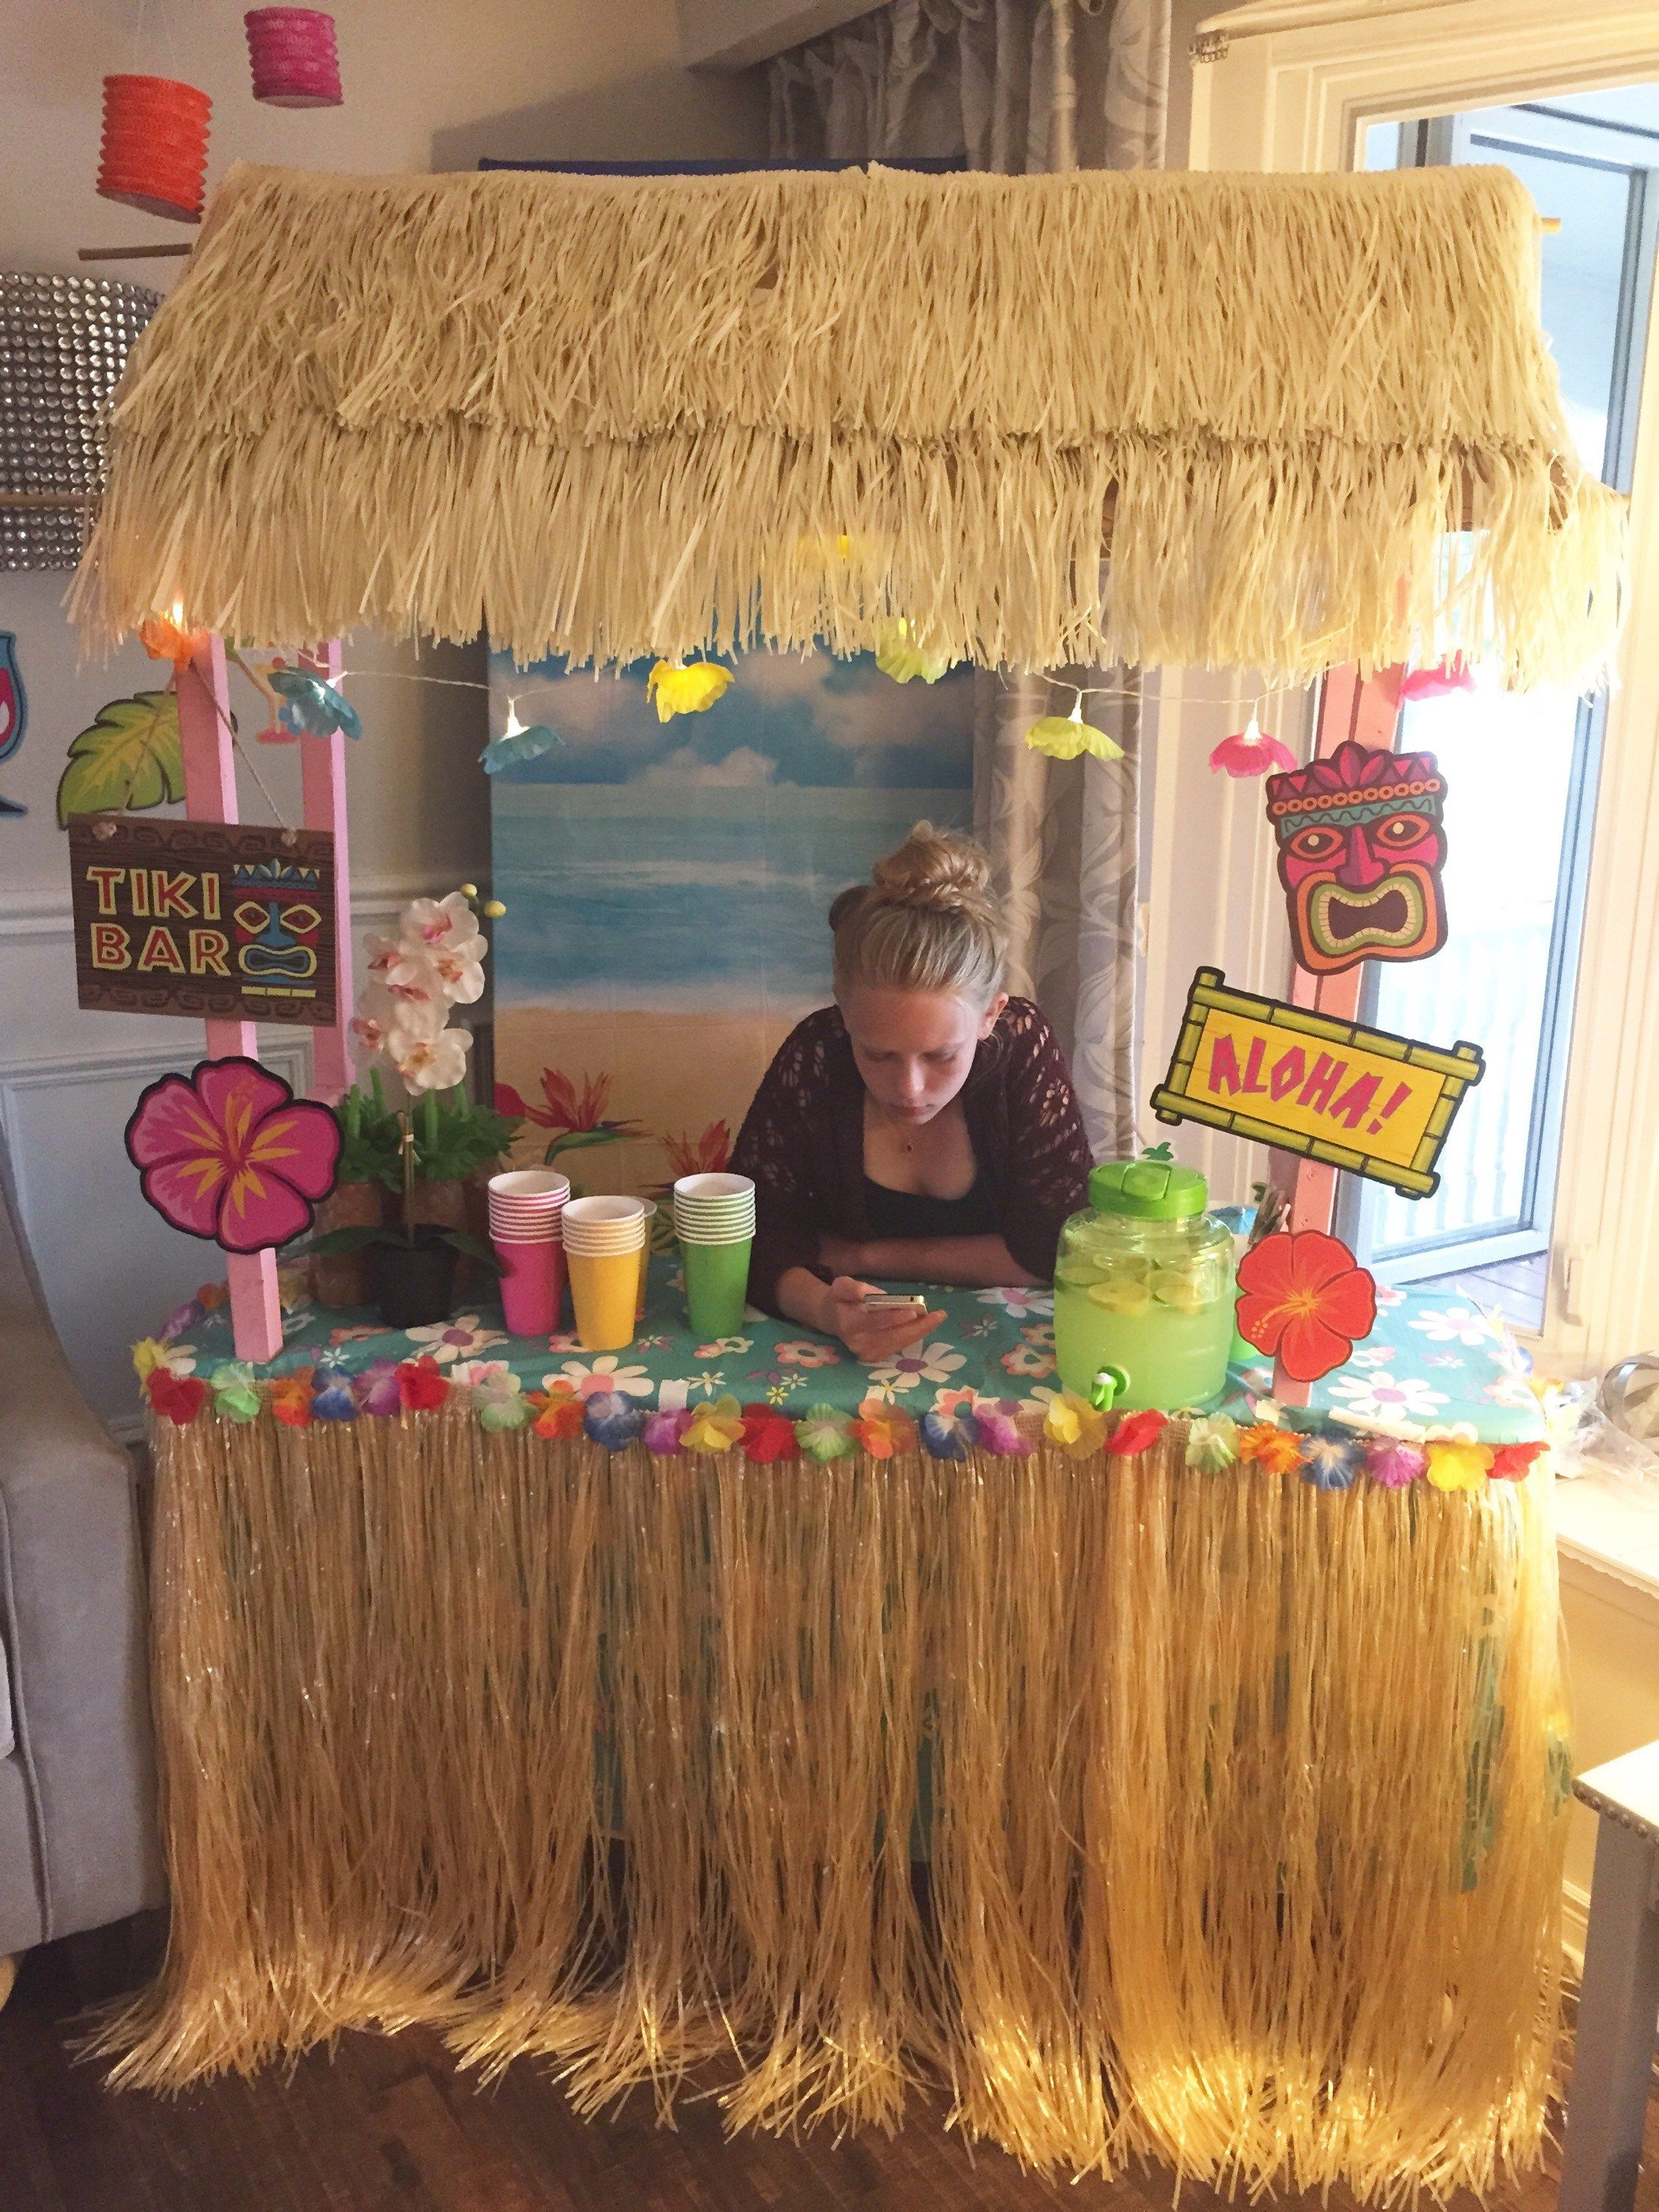 While Browsing Around At The Party Supplies I Came Across Some Amazing Luau Decor Ideas One Of Them Was This Adorable Tiki Bar Set Up